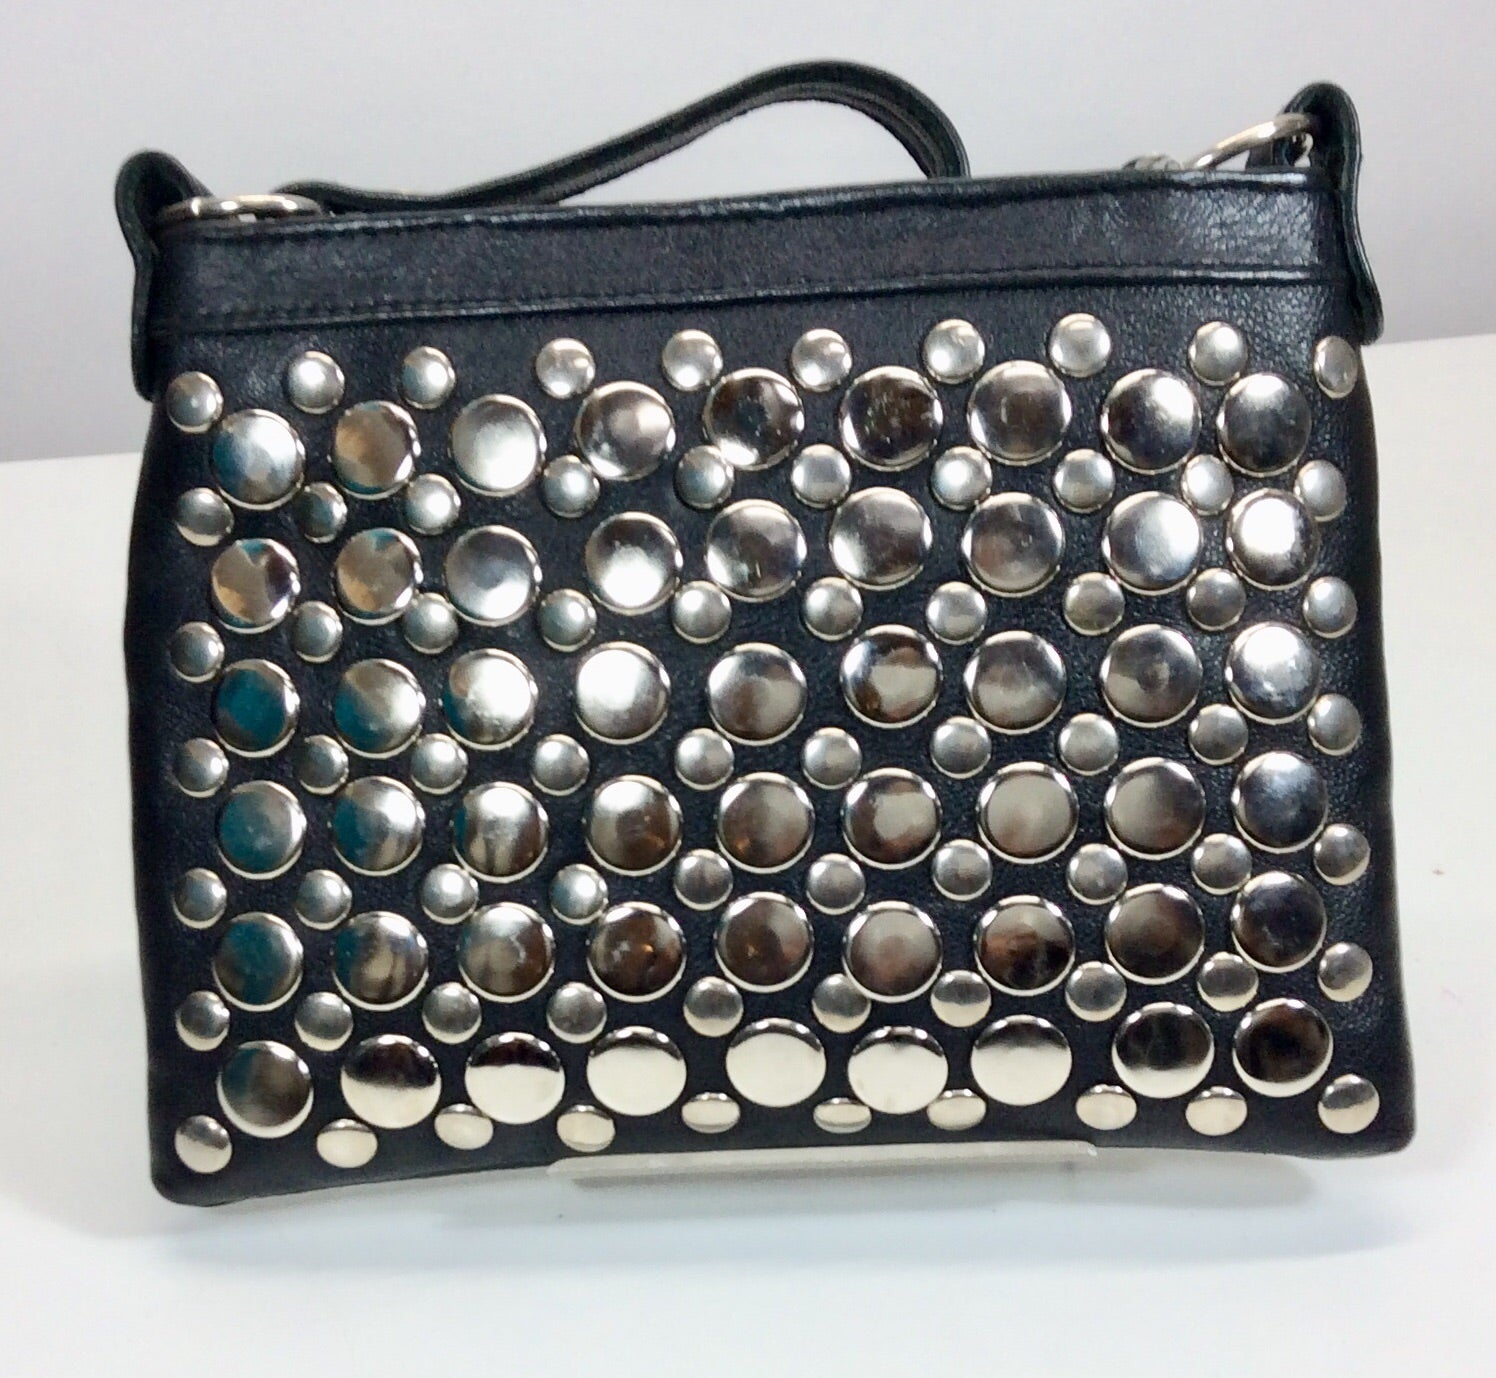 Silver studded small pouch black leather bag